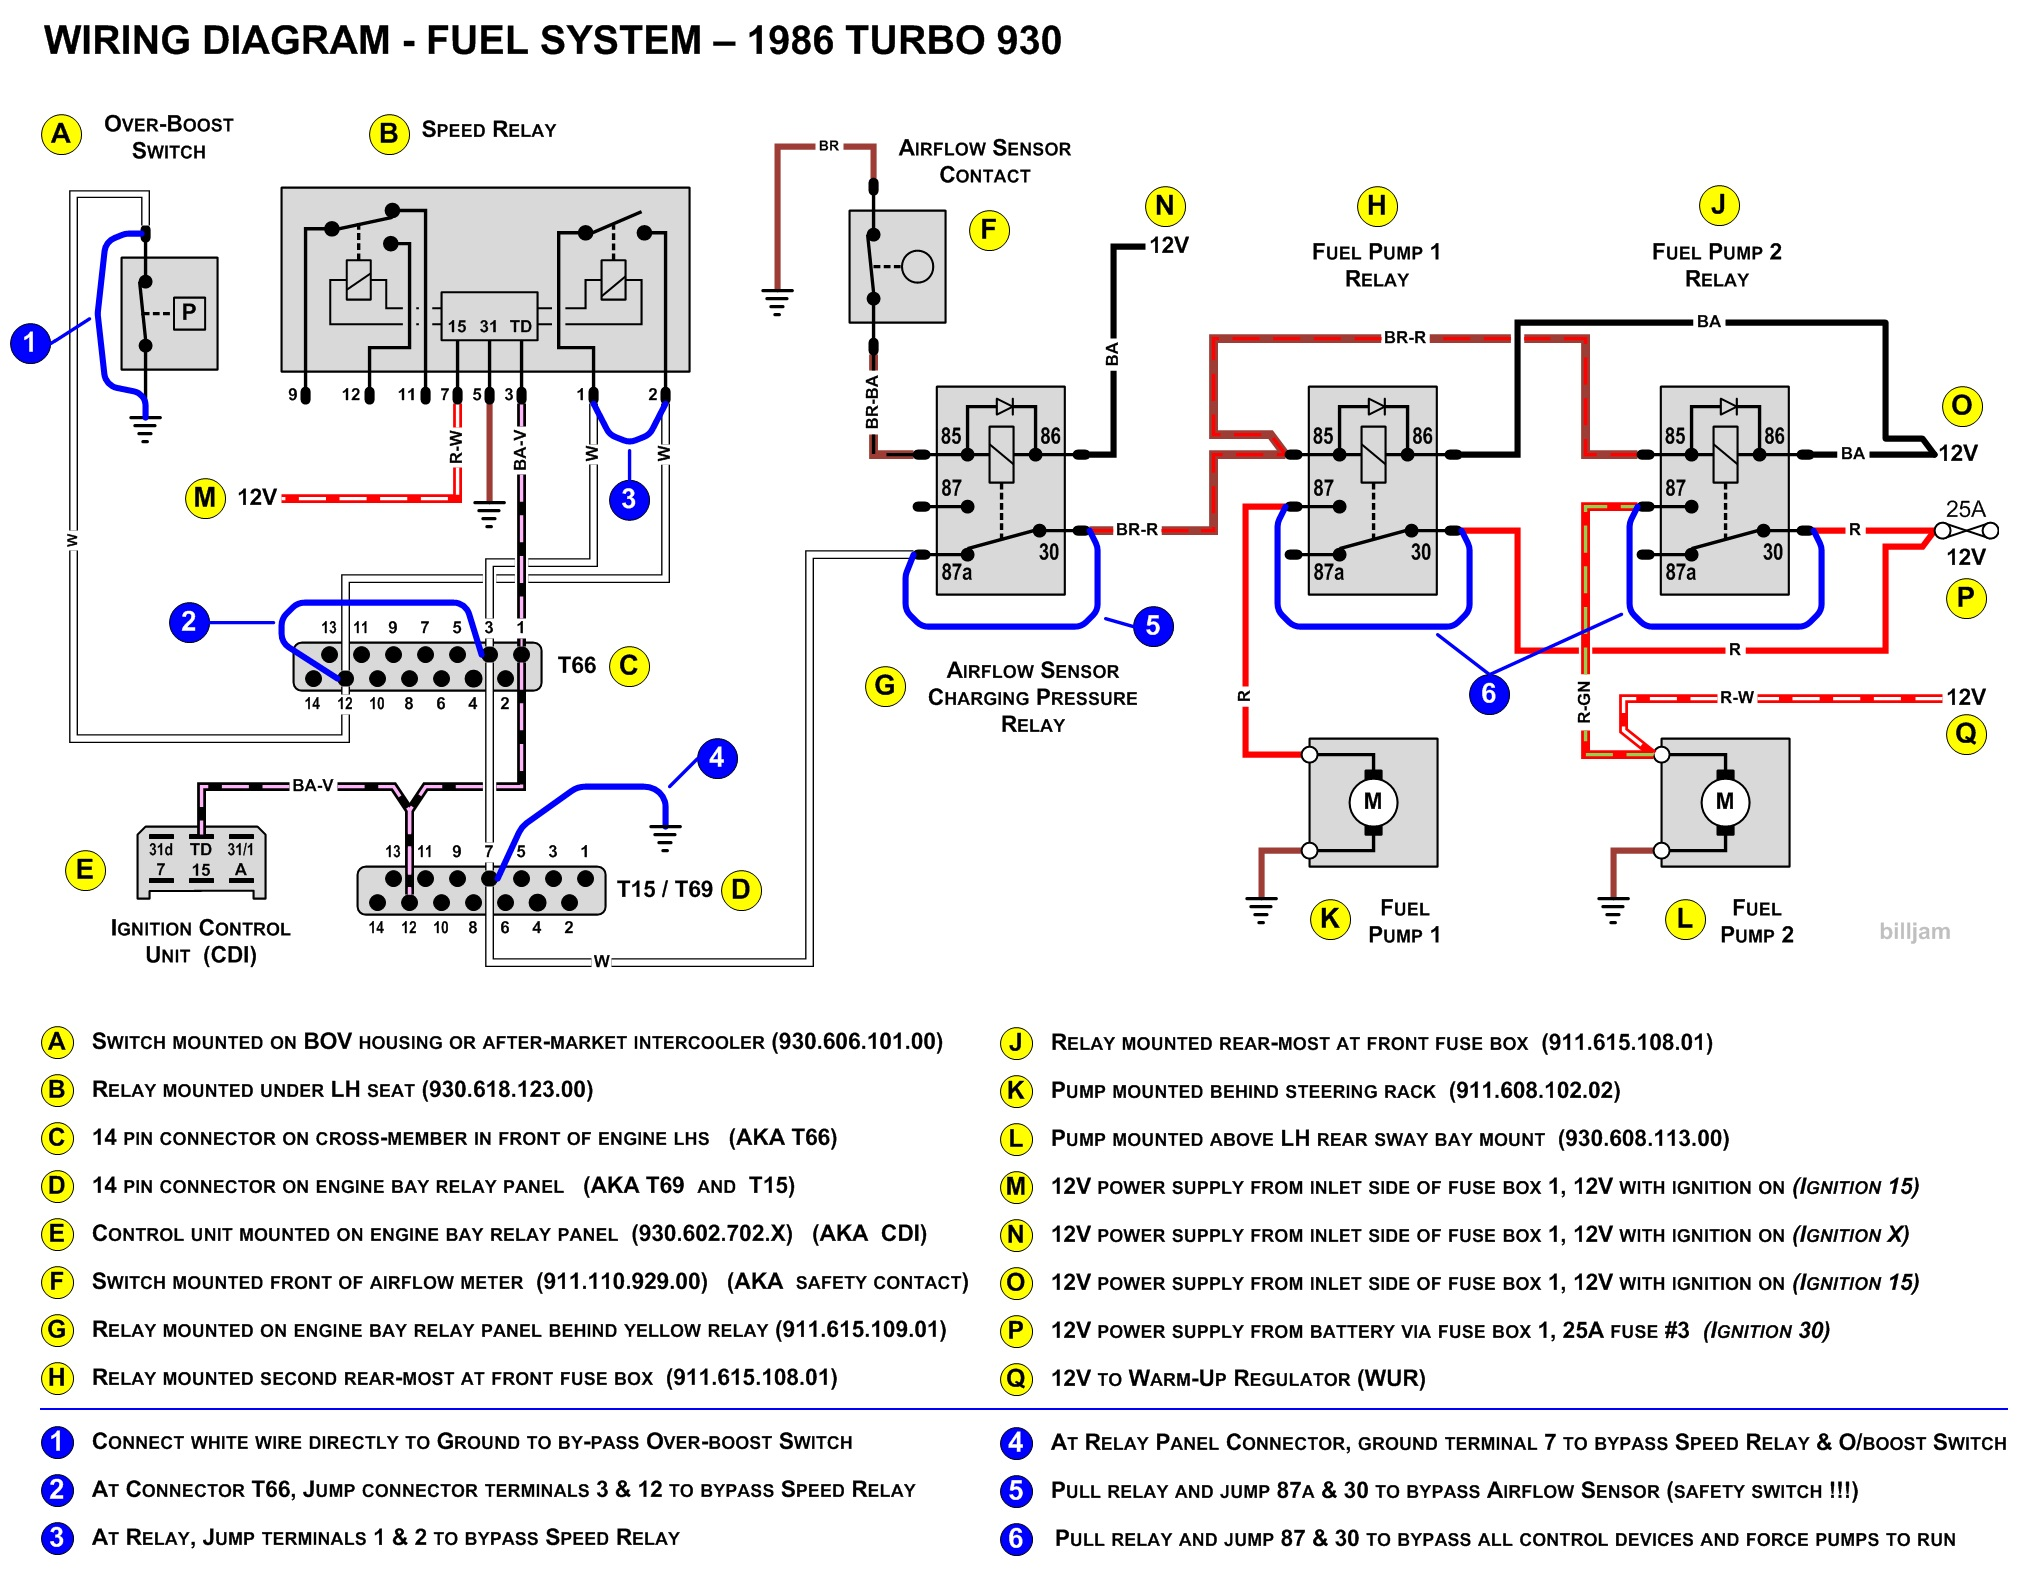 1986 930 fuel system wiring diagram with jumpers (jpeg)